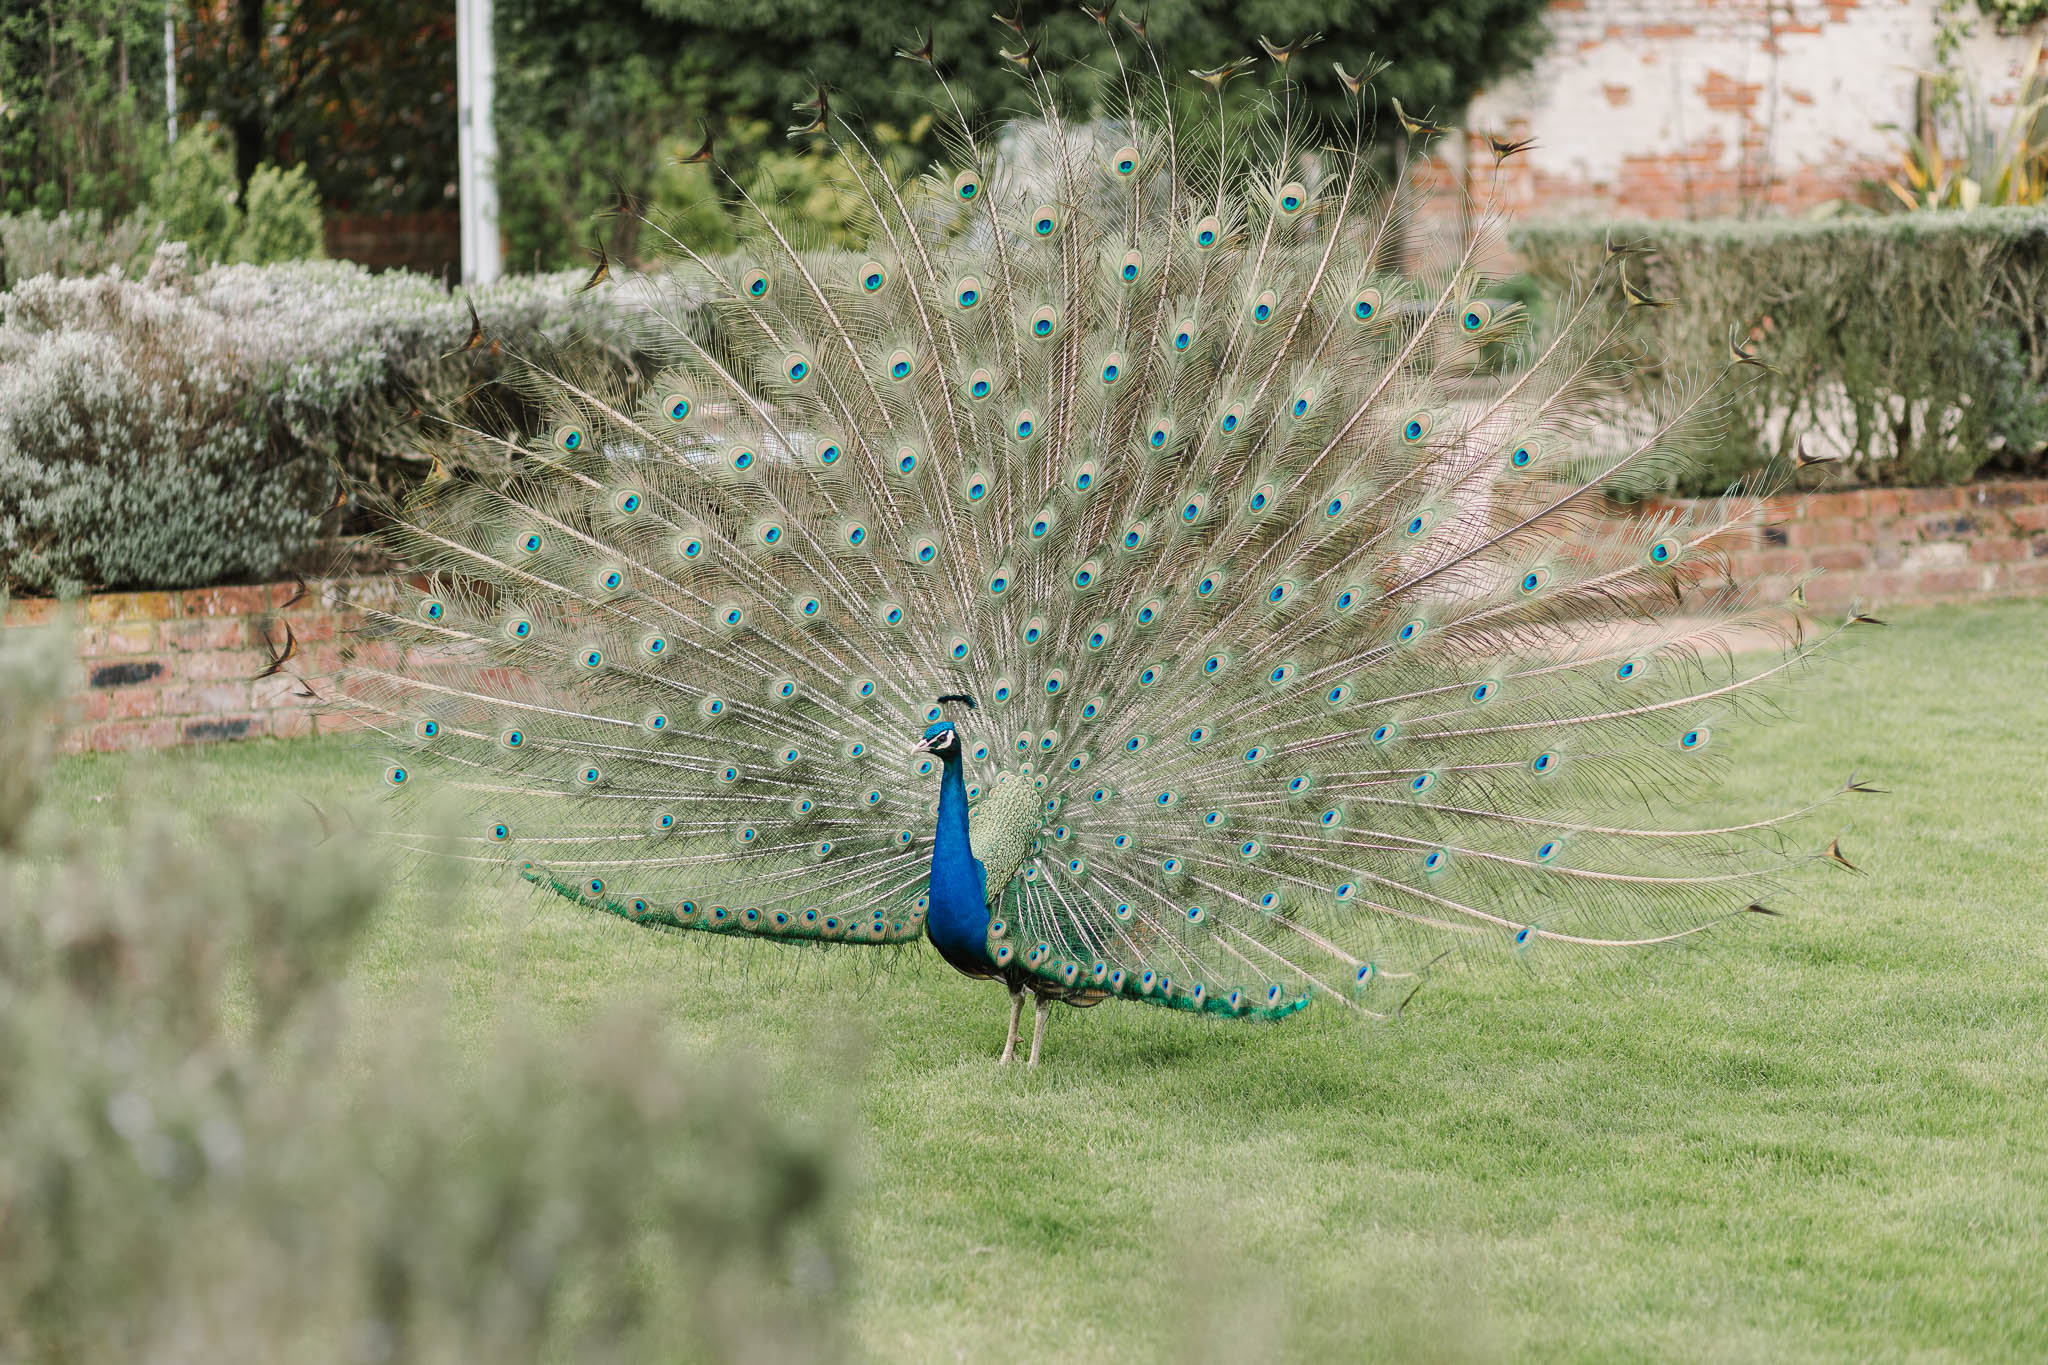 peacock spreading feathers at wedding